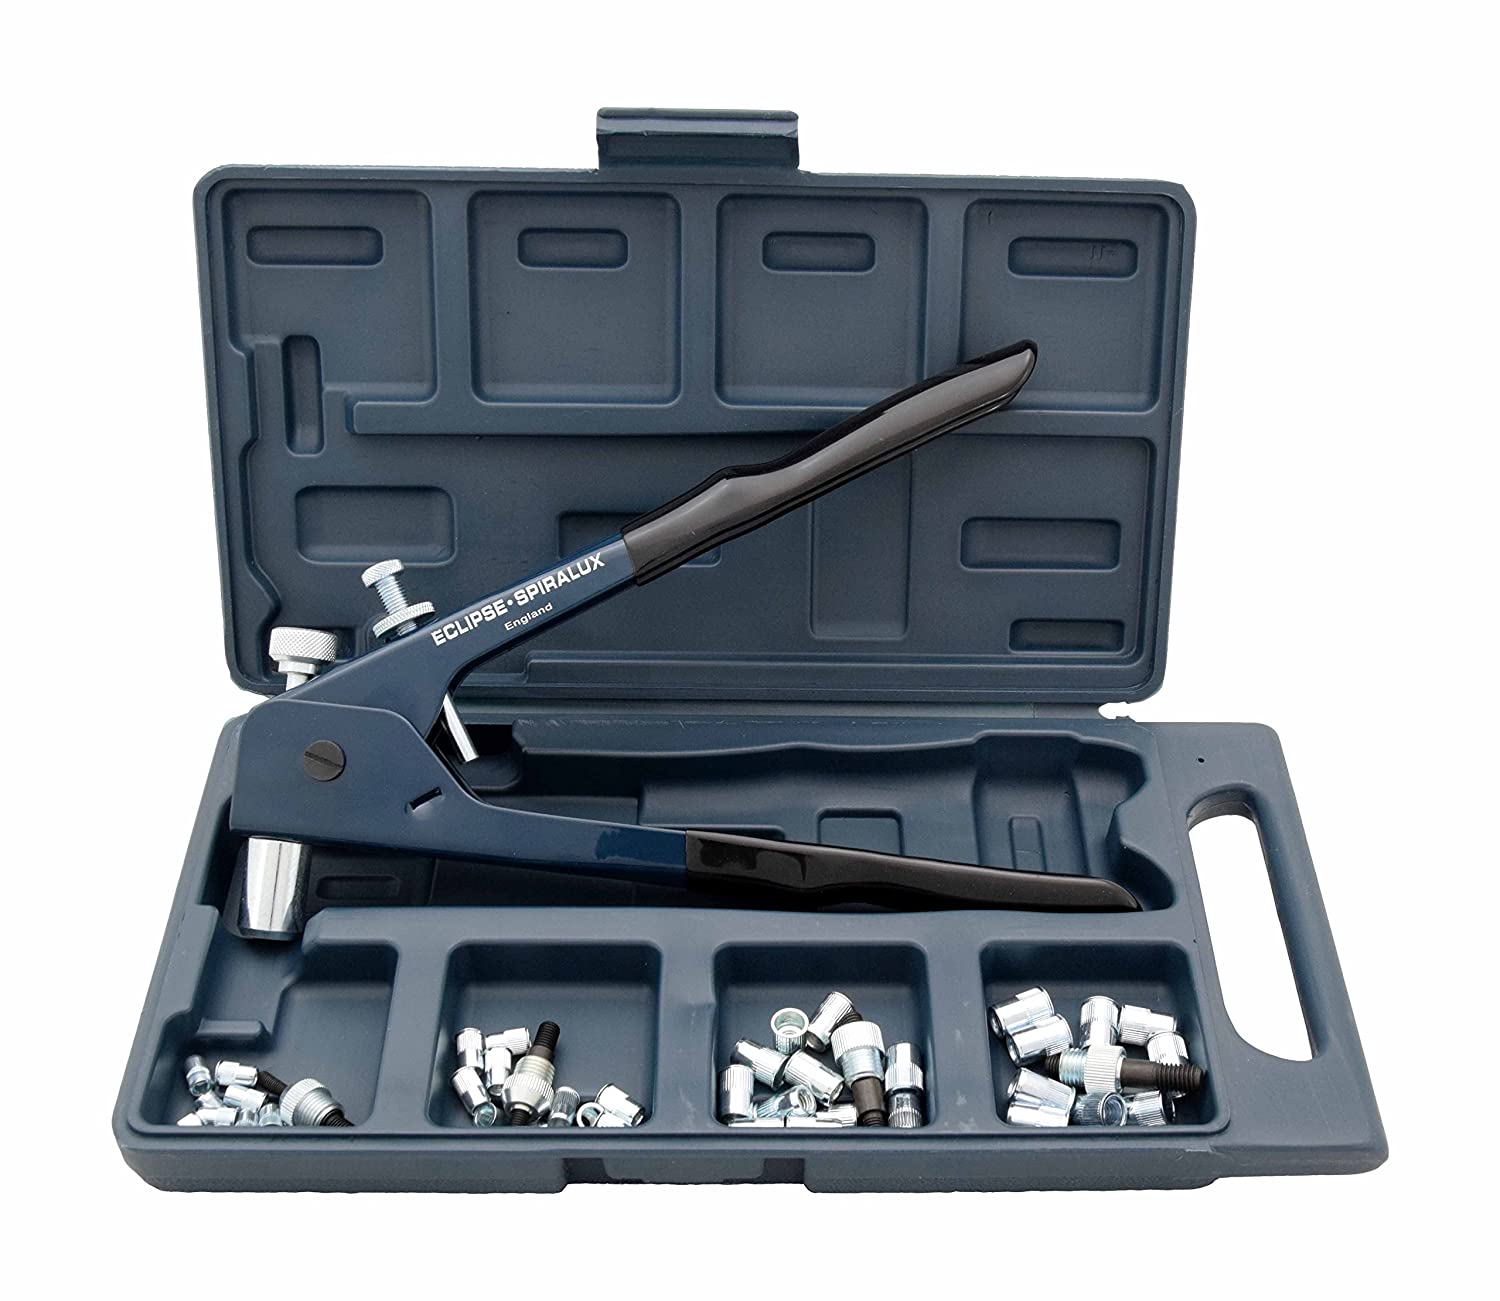 Imperial Style Eclipse 2745-01 Mild Steel Spiralux Threaded Insert Setting Tool Kit